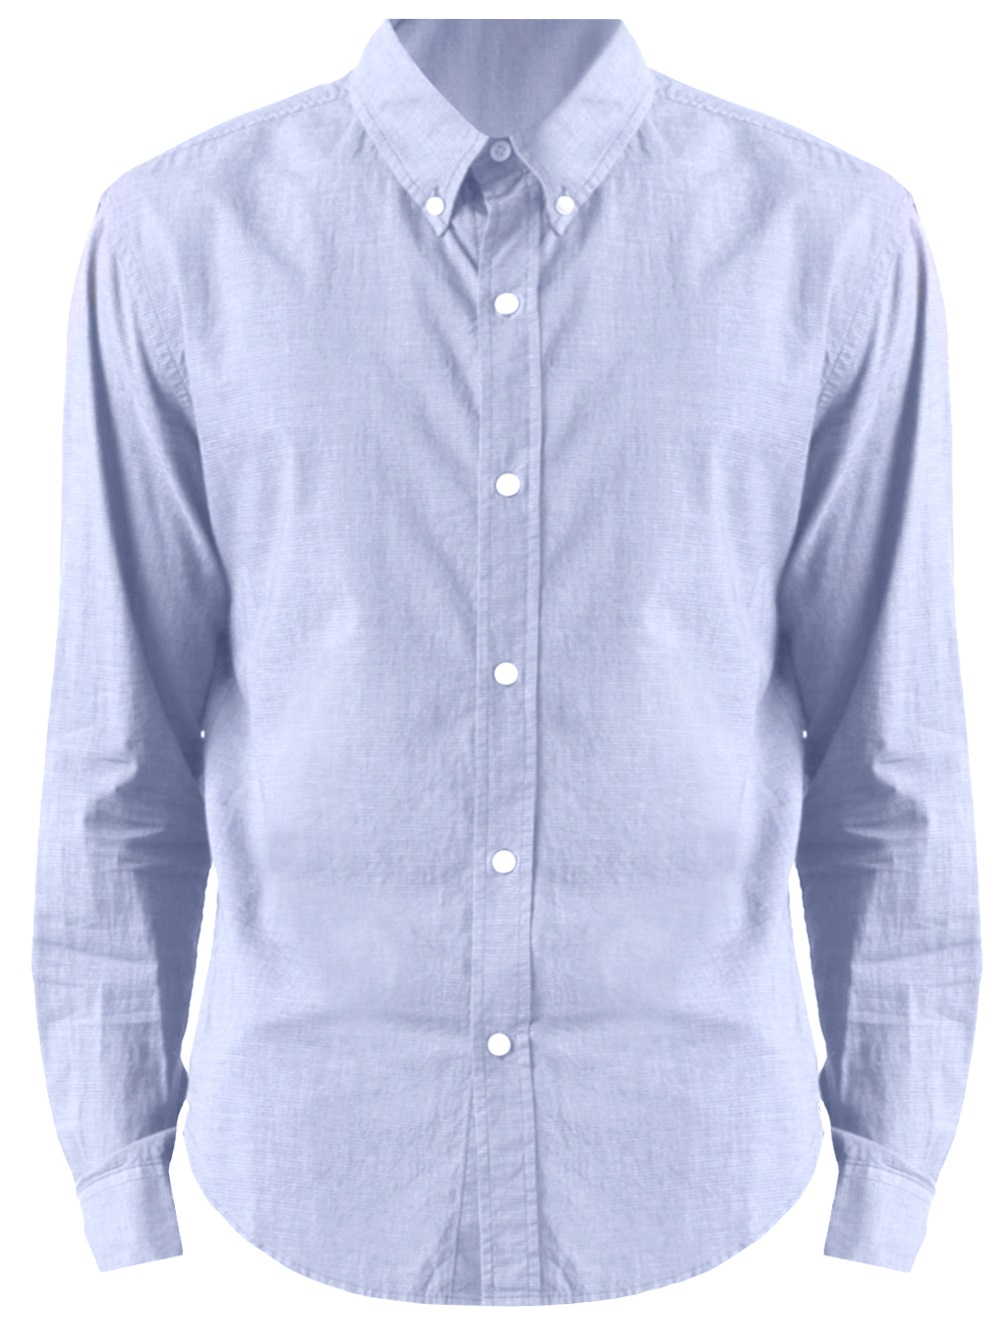 Band of outsiders button down dress shirt in blue for men for Button down uniform shirts